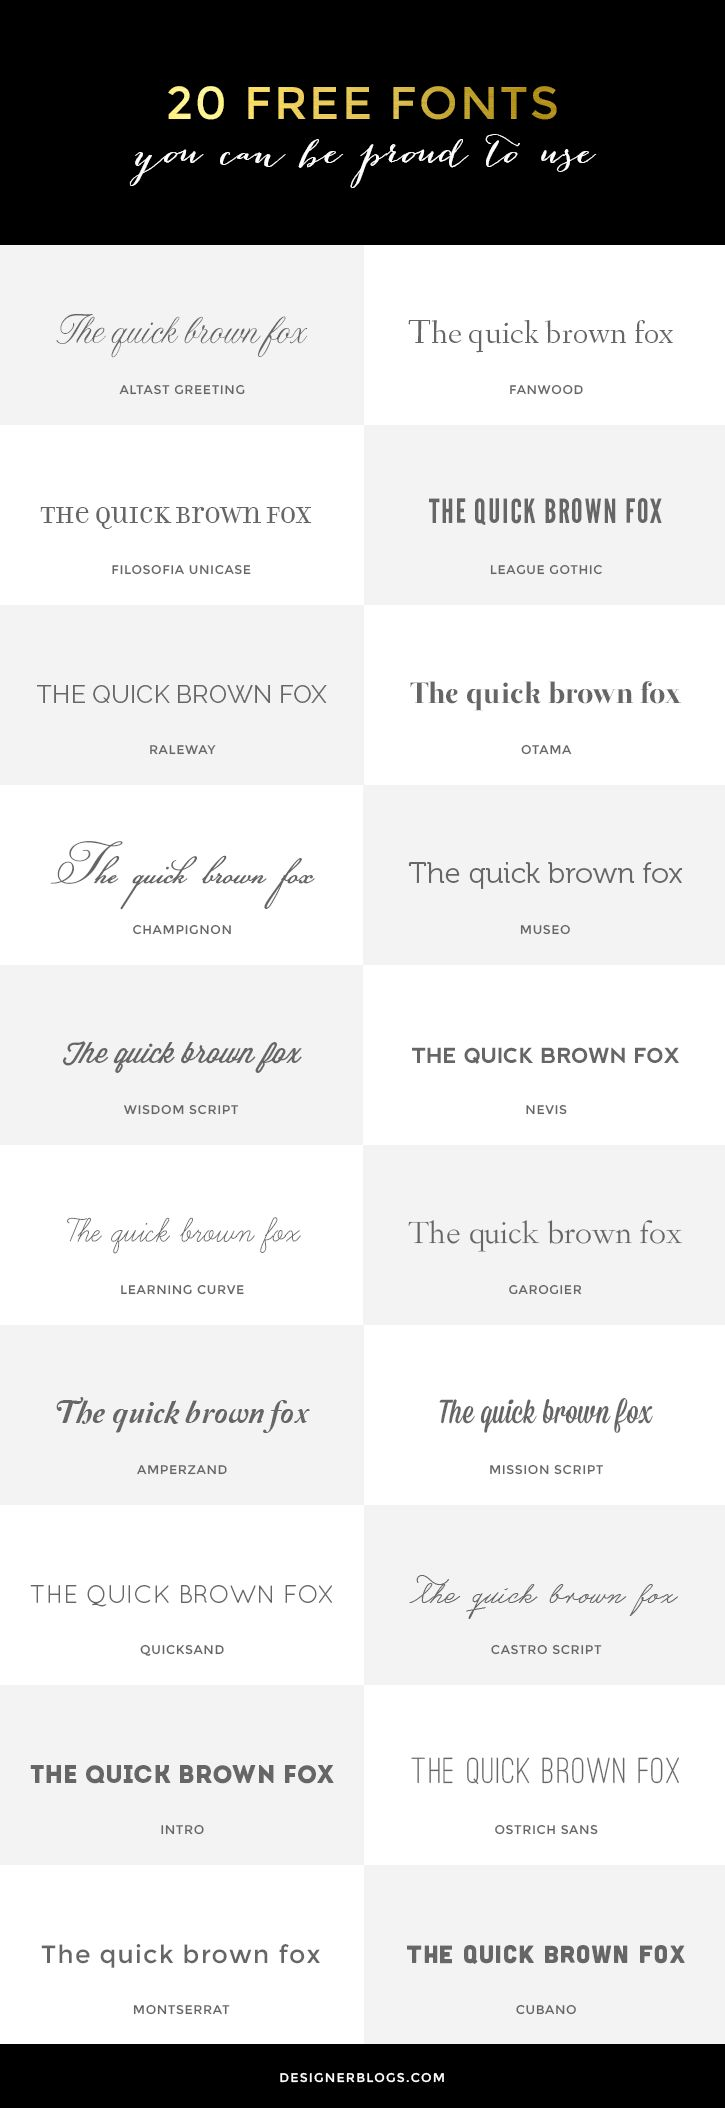 20 Free #Fonts You Can Be Proud to Use. #typography